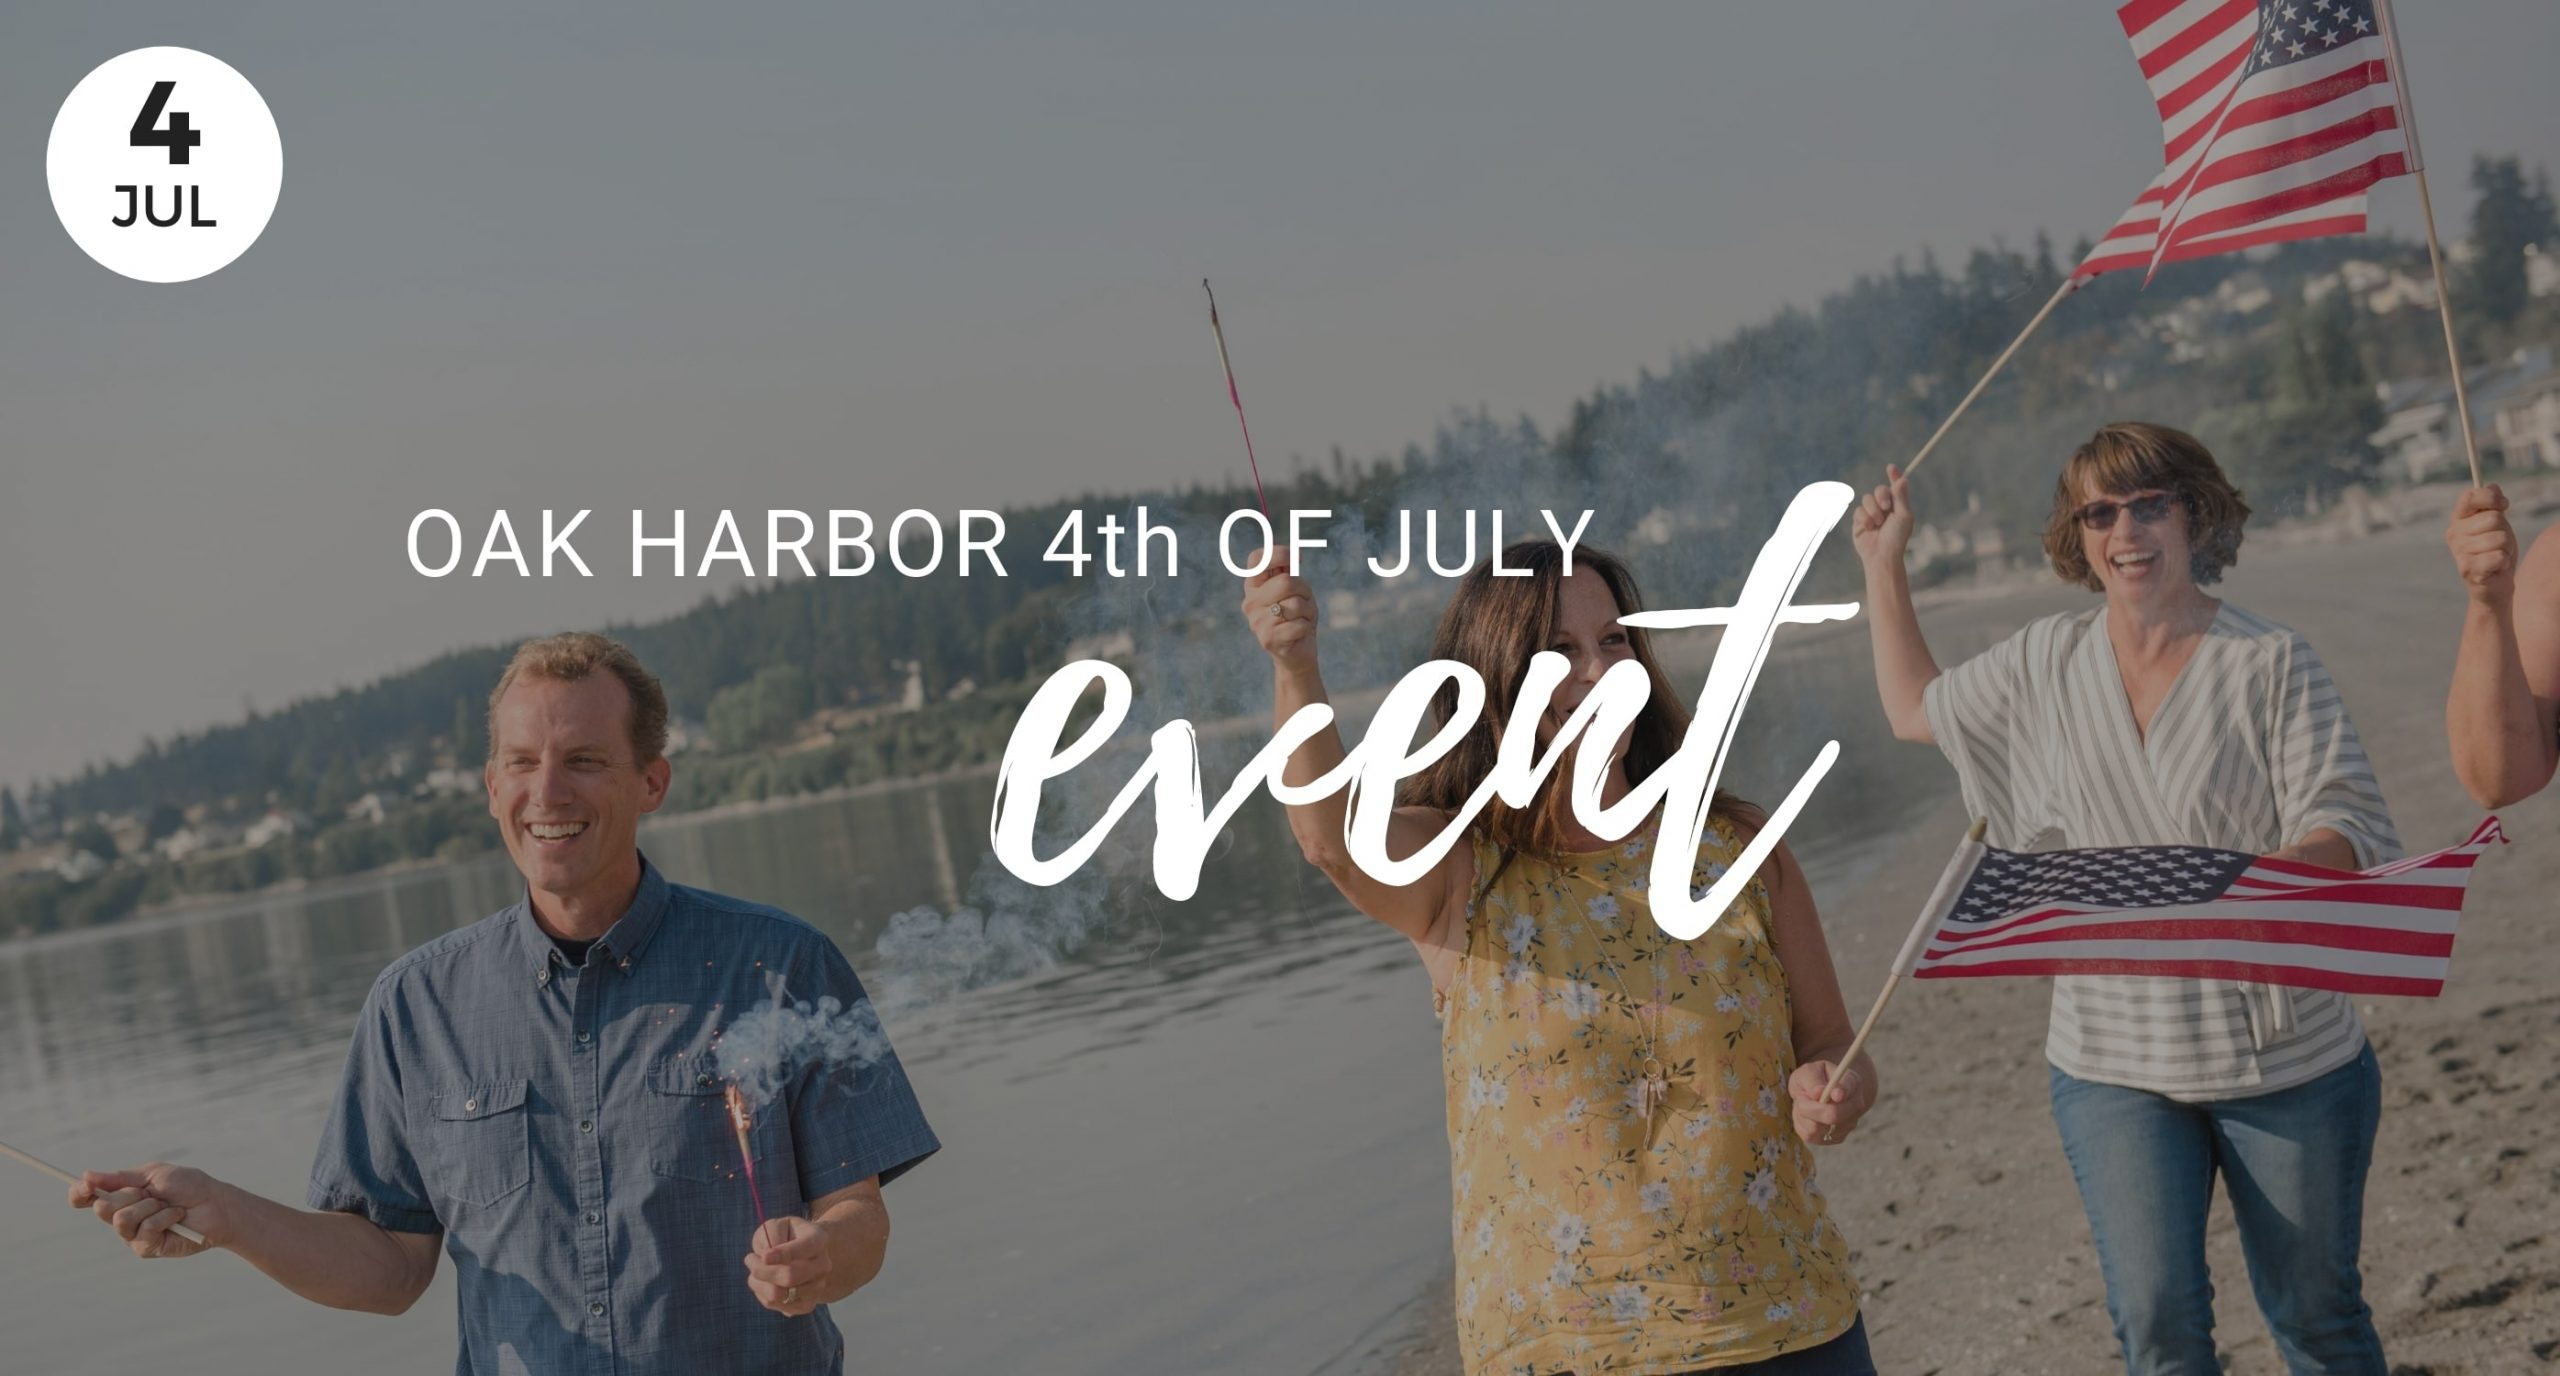 4th of july, Whidbey Island, oak Harbor, 2021, event, windermere